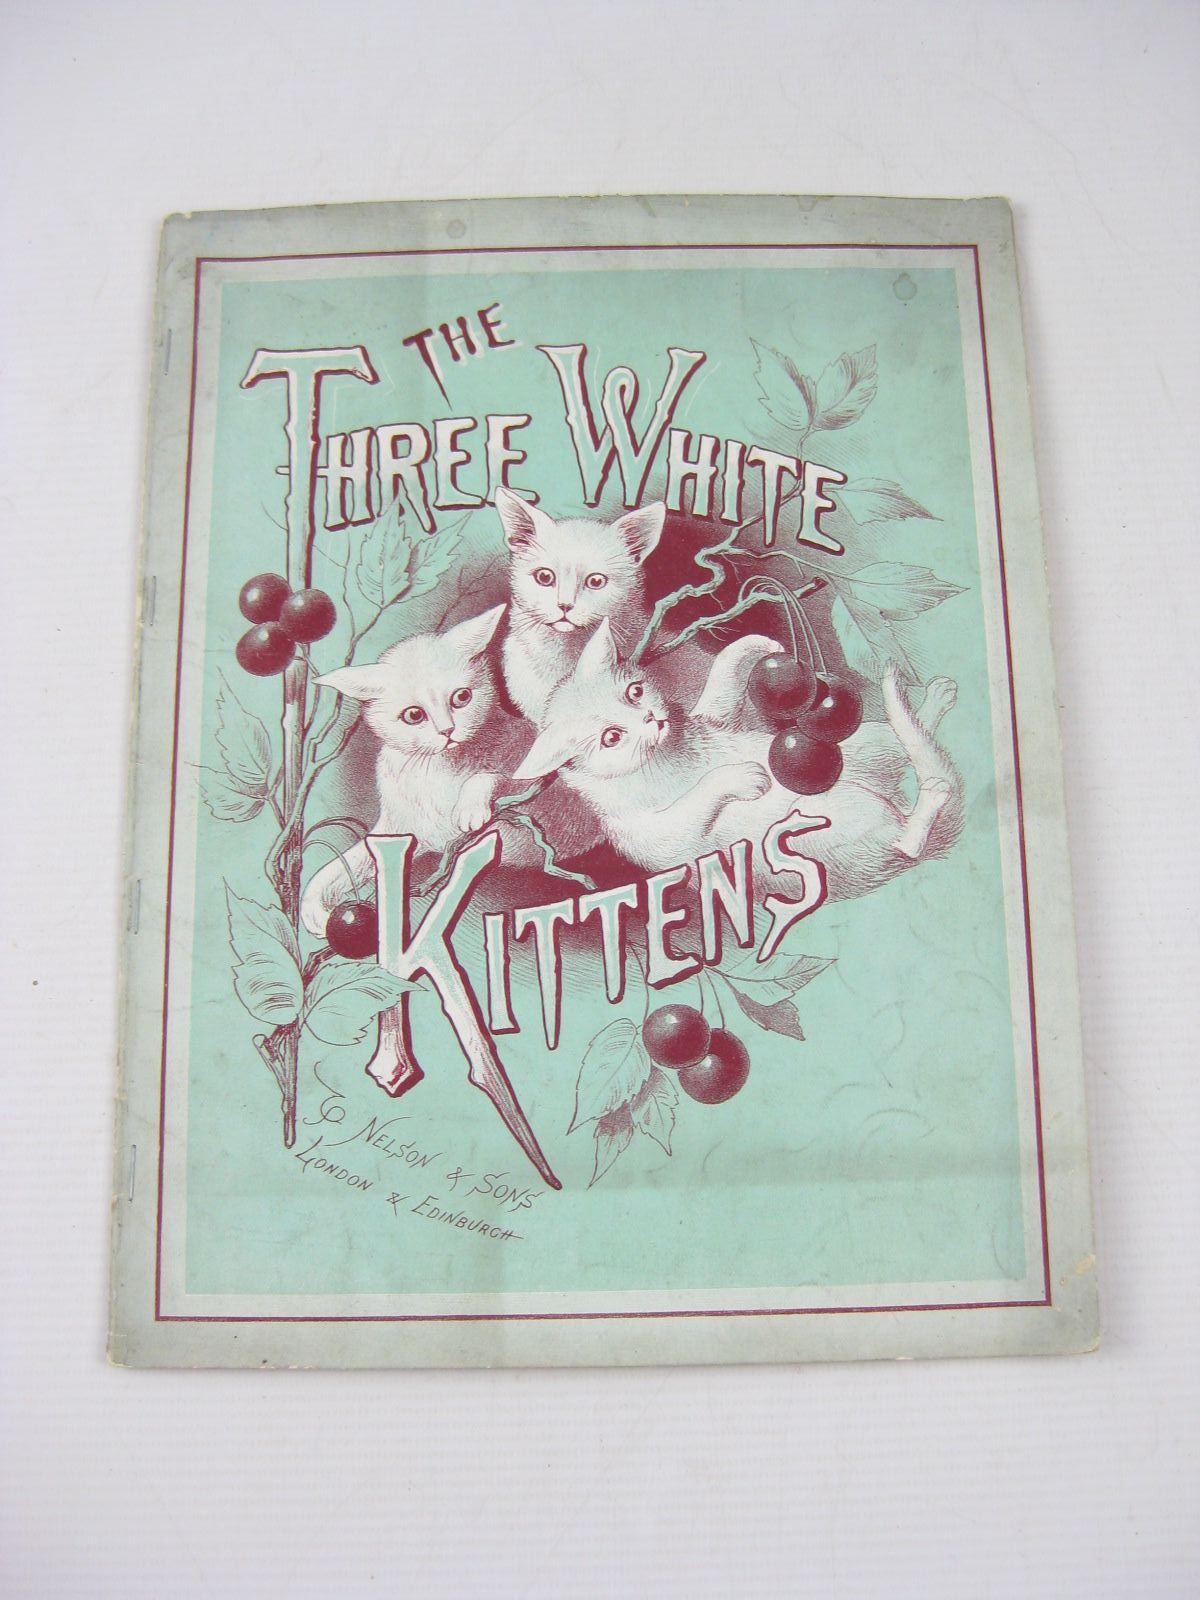 Photo of THE THREE WHITE KITTENS published by T. Nelson & Sons (STOCK CODE: 1314230)  for sale by Stella & Rose's Books